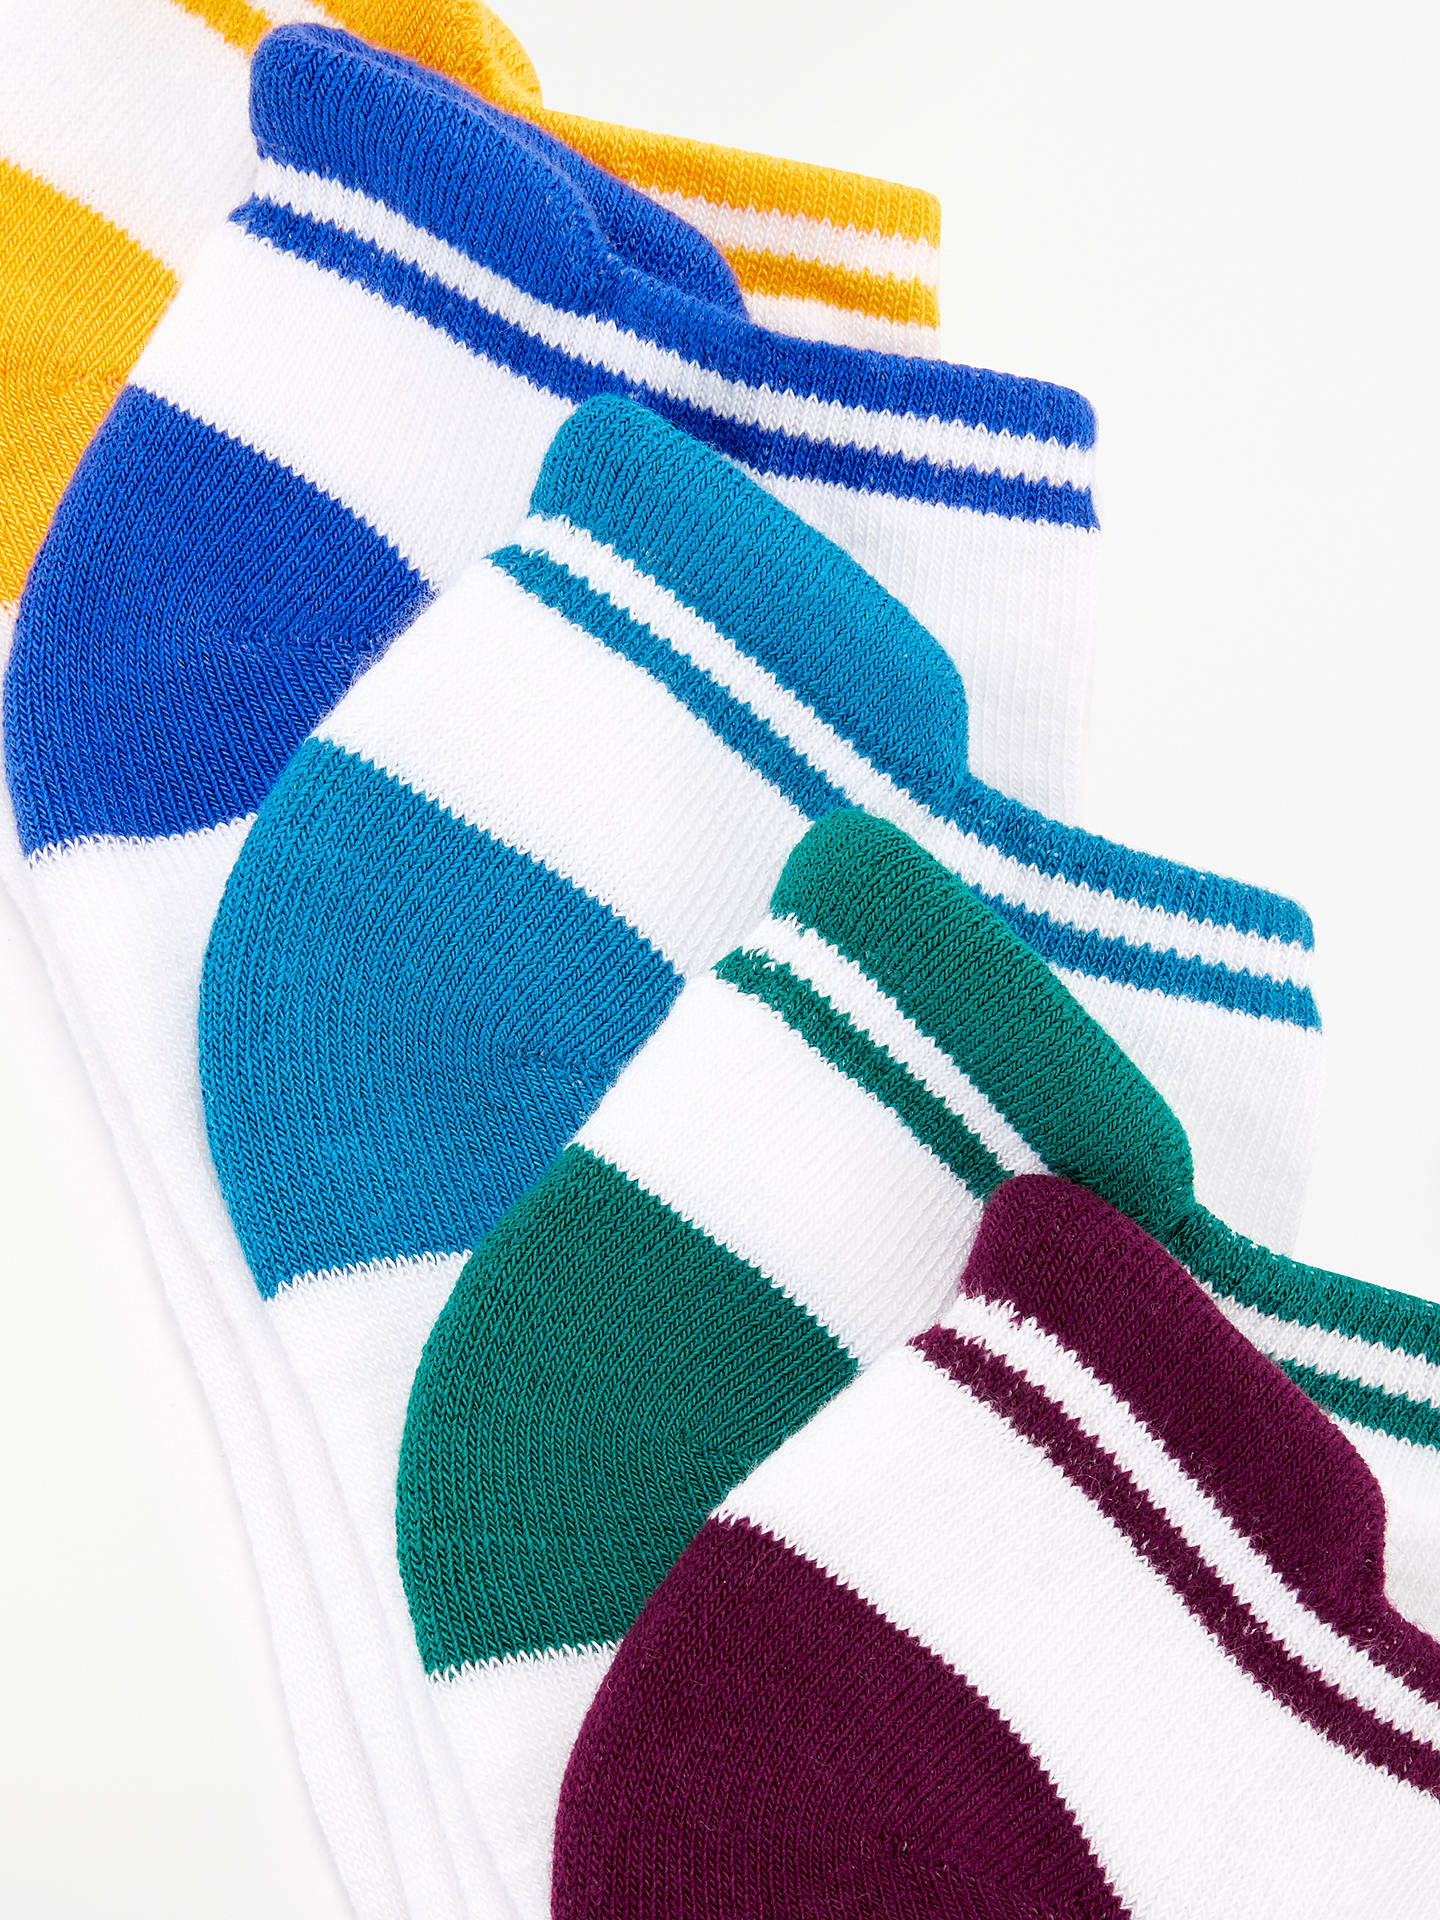 BuyJohn Lewis & Partners Cushioned Trainer Socks, Pack of 5, White, S Online at johnlewis.com